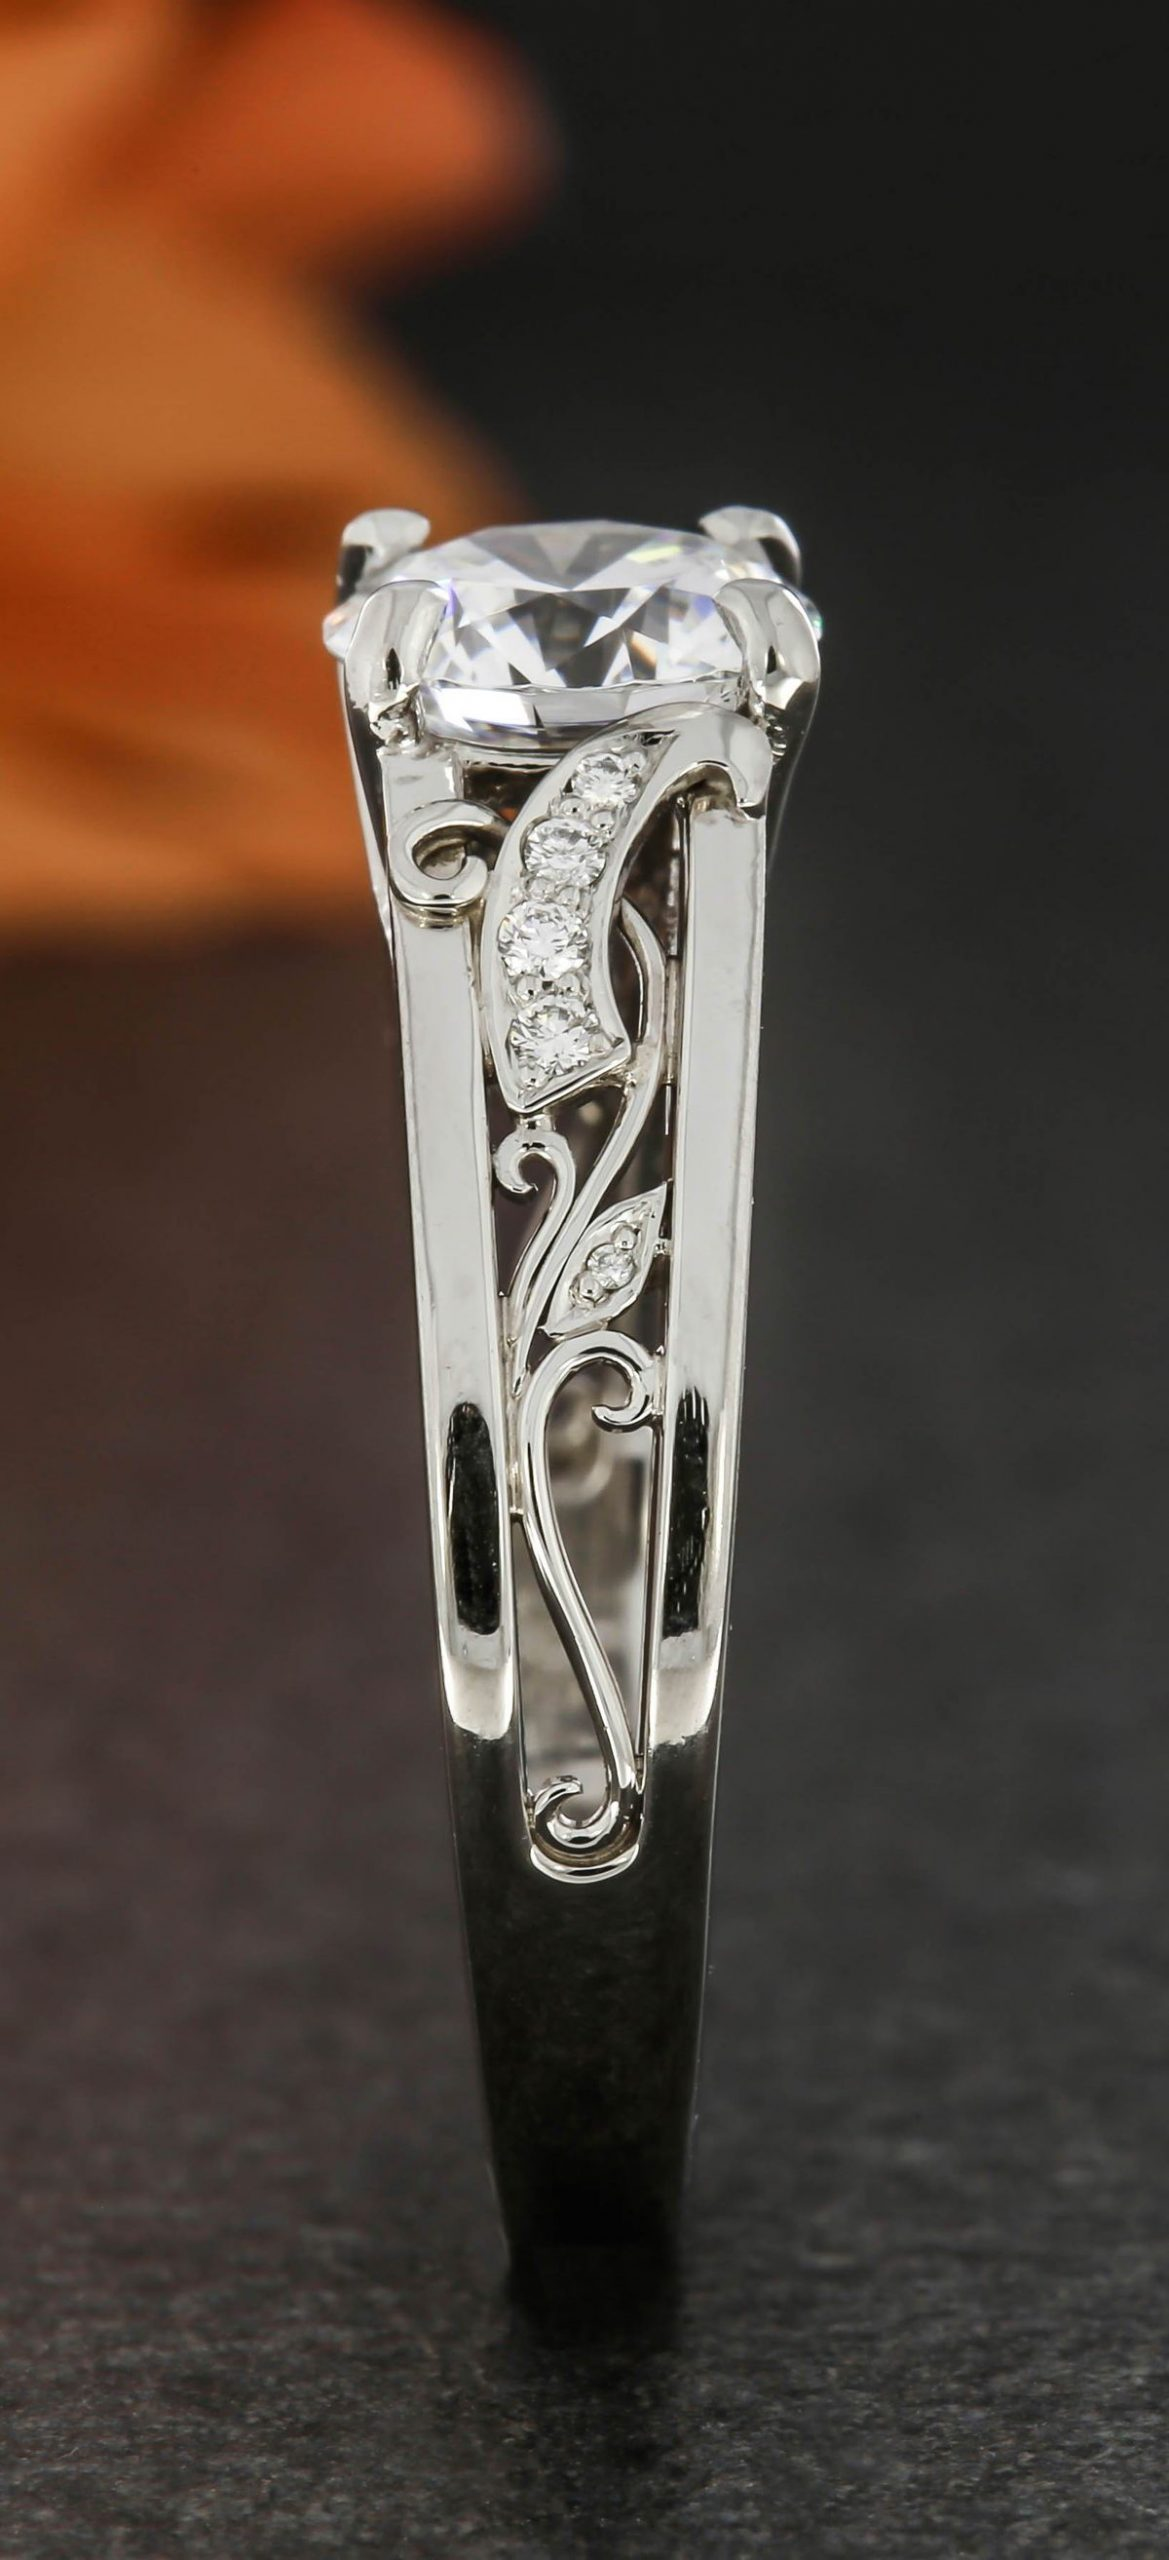 jewelryworks-cool-engagement-rings-157766793182751711